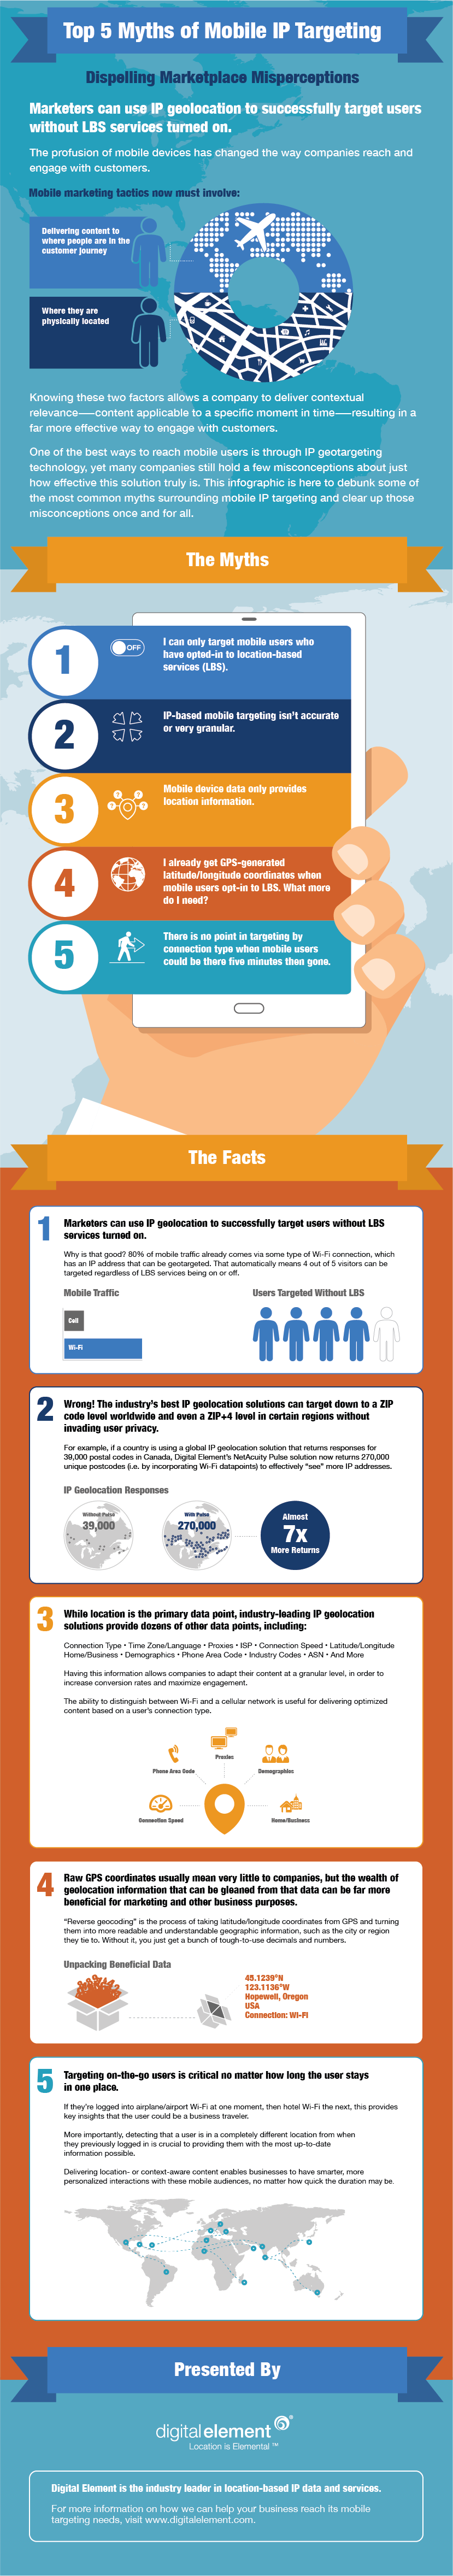 Infographic: Top 5 Myths of Mobile IP Targeting - Digital